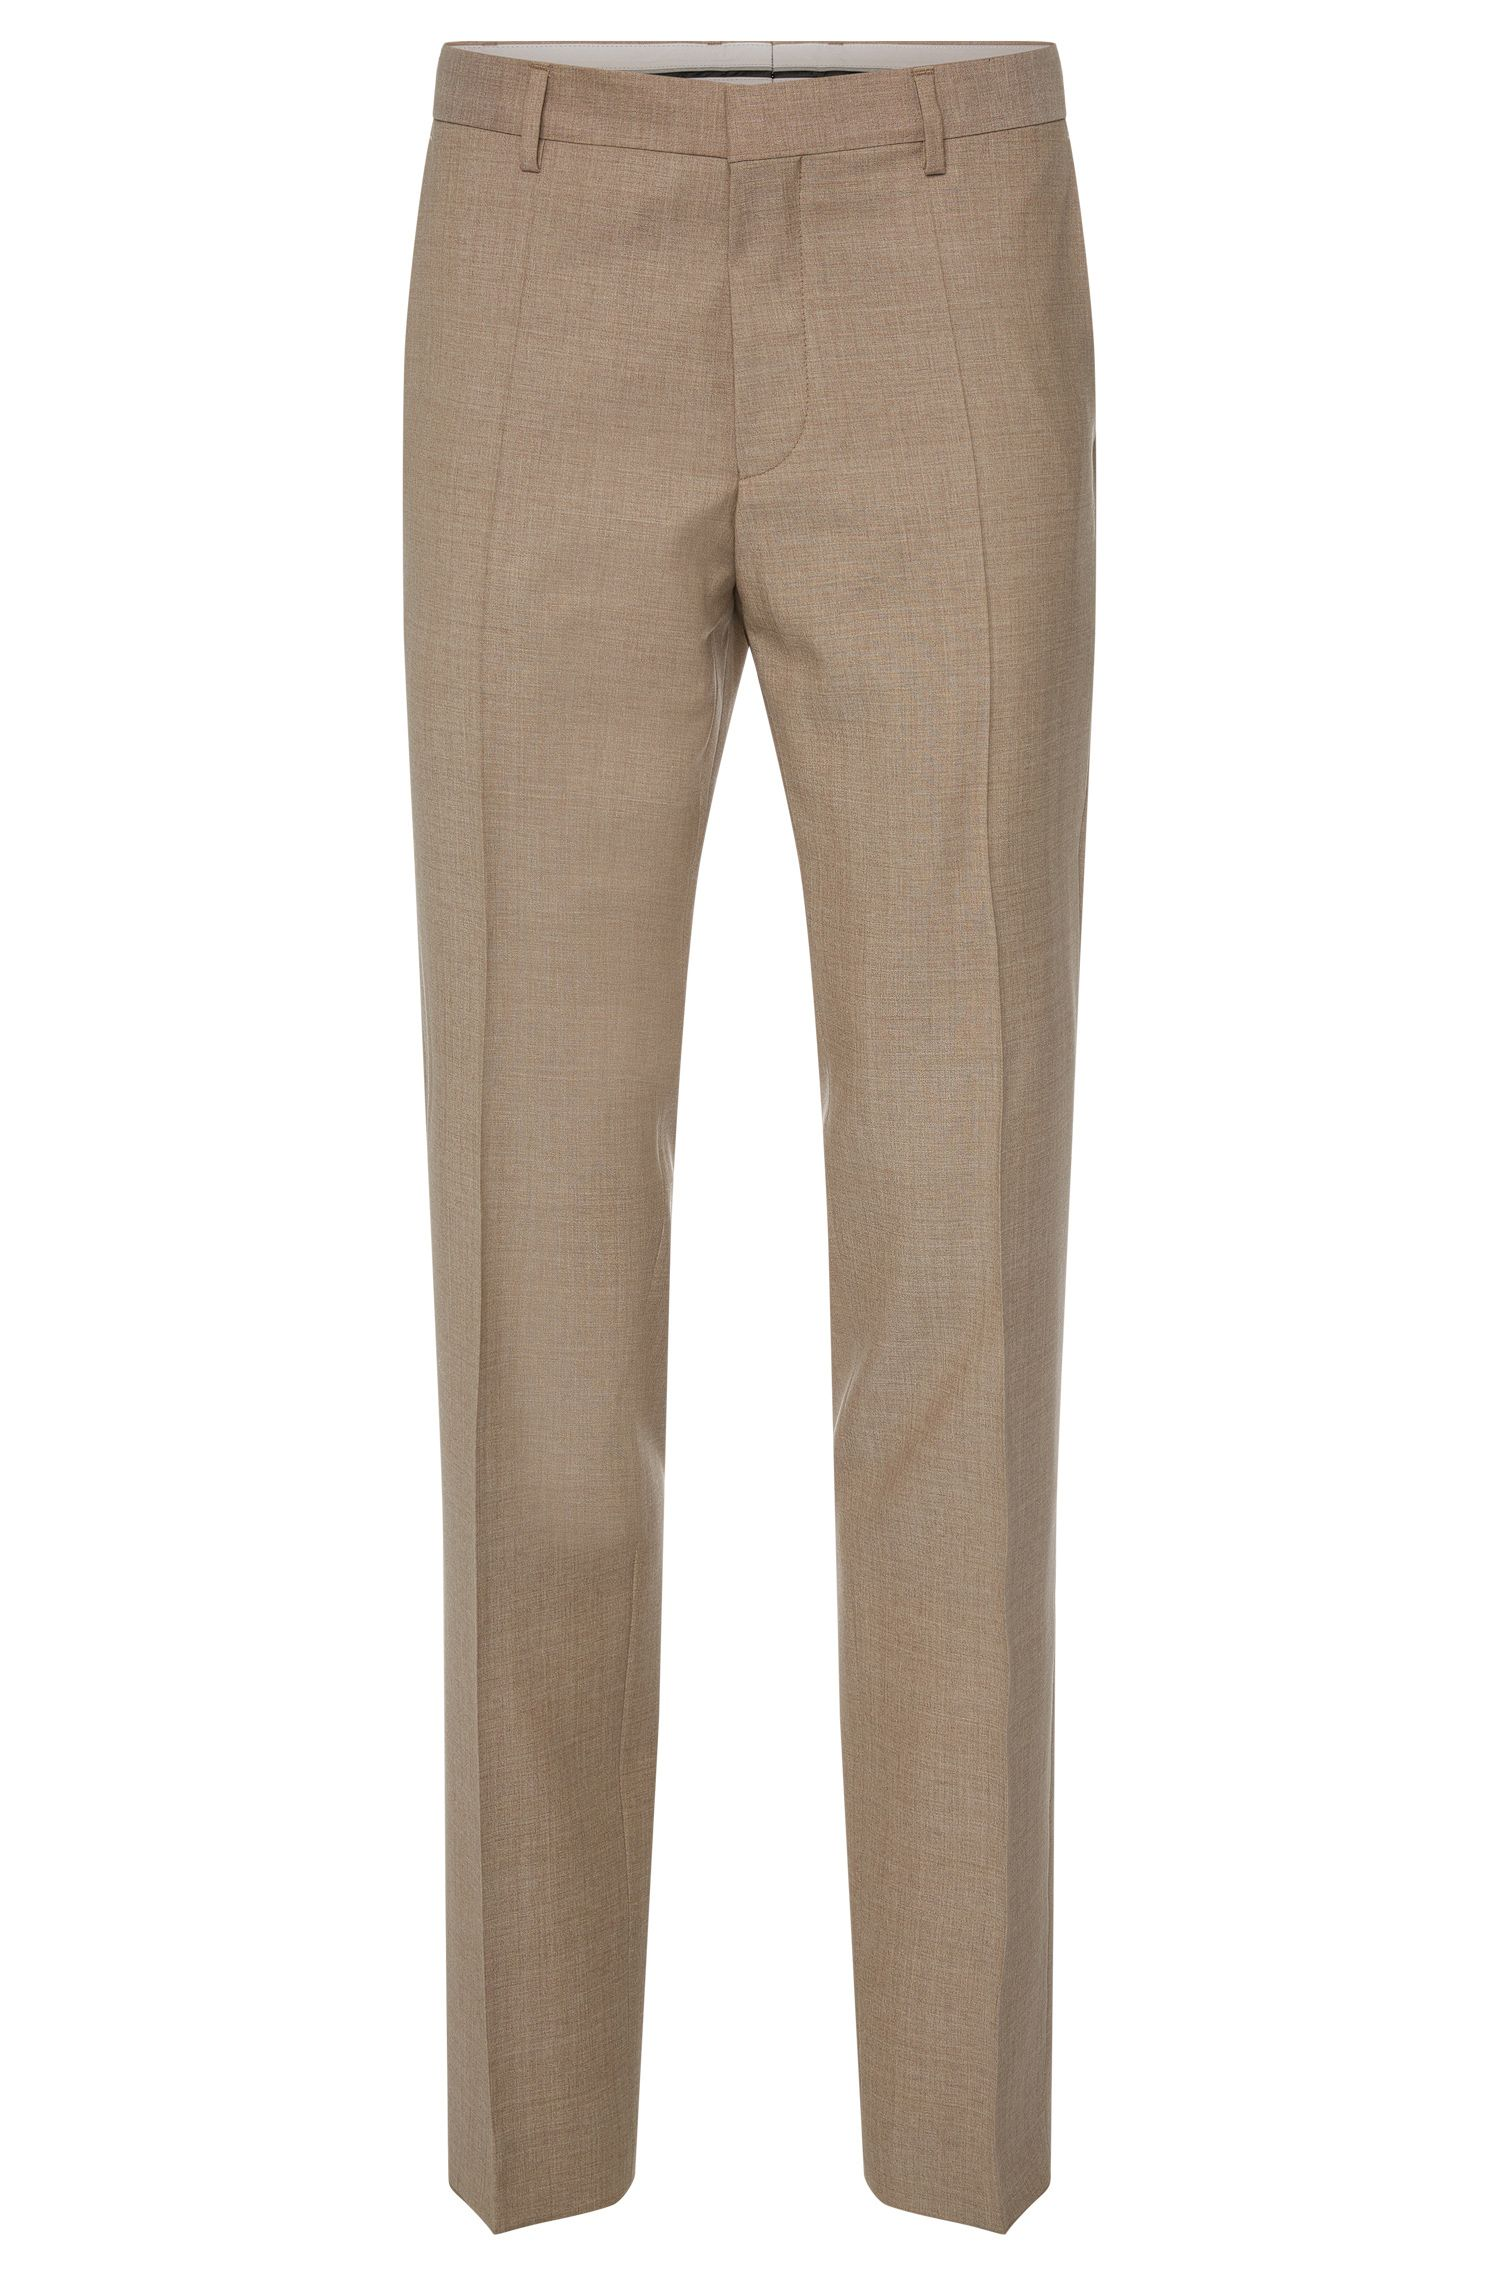 'Genesis' | Slim Fit, Italian Super 110 Virgin Wool Dress Pants